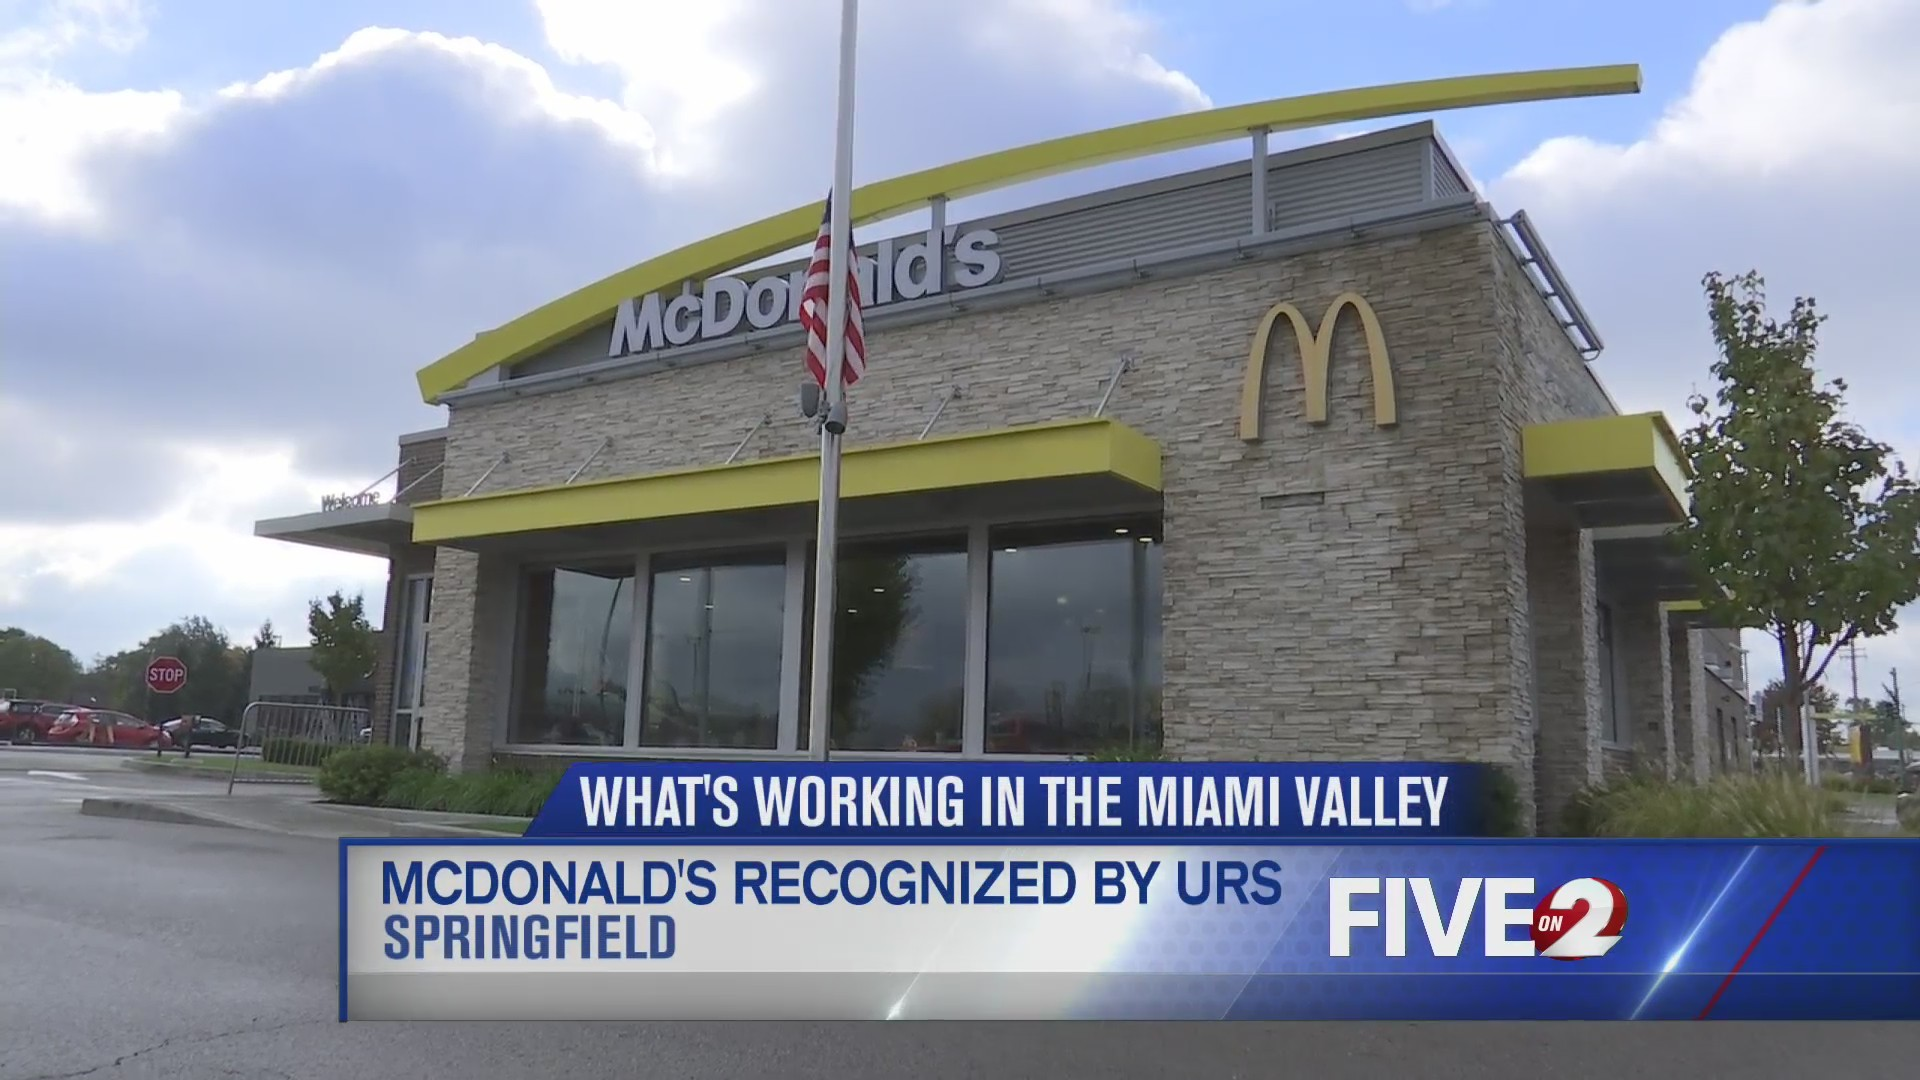 McDonald's recognized by URS